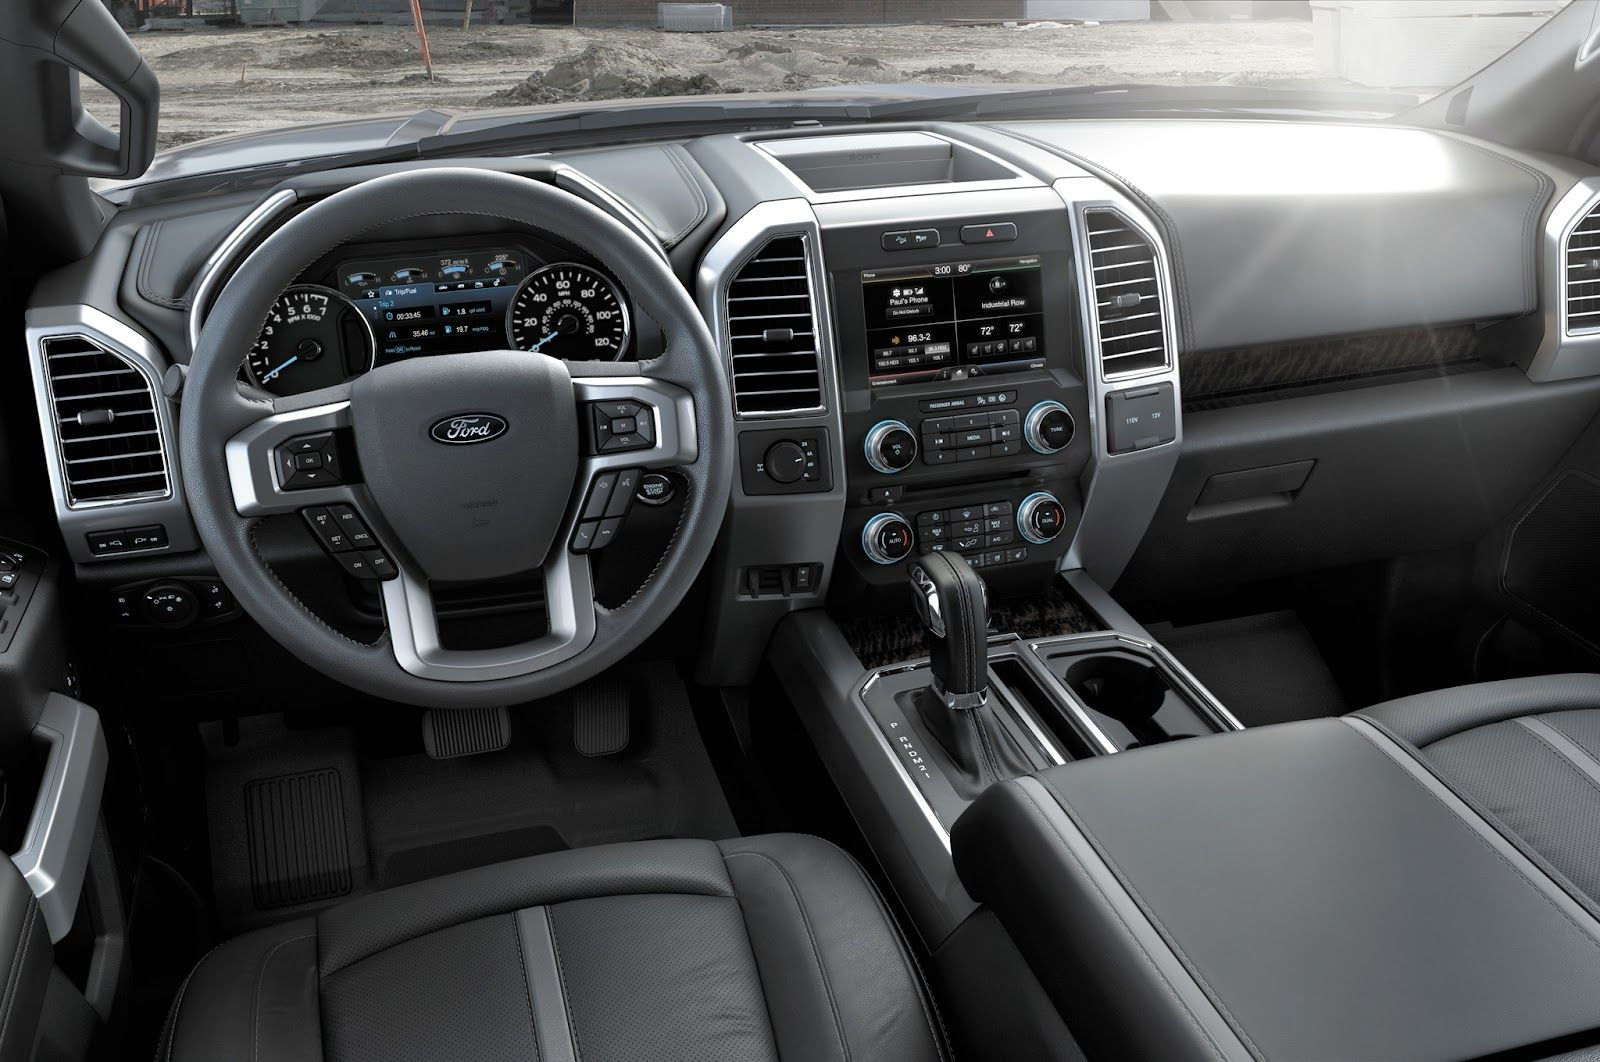 2016 Ford F150 Interior With Images Ford F150 Interior Ford F150 2015 Ford F150